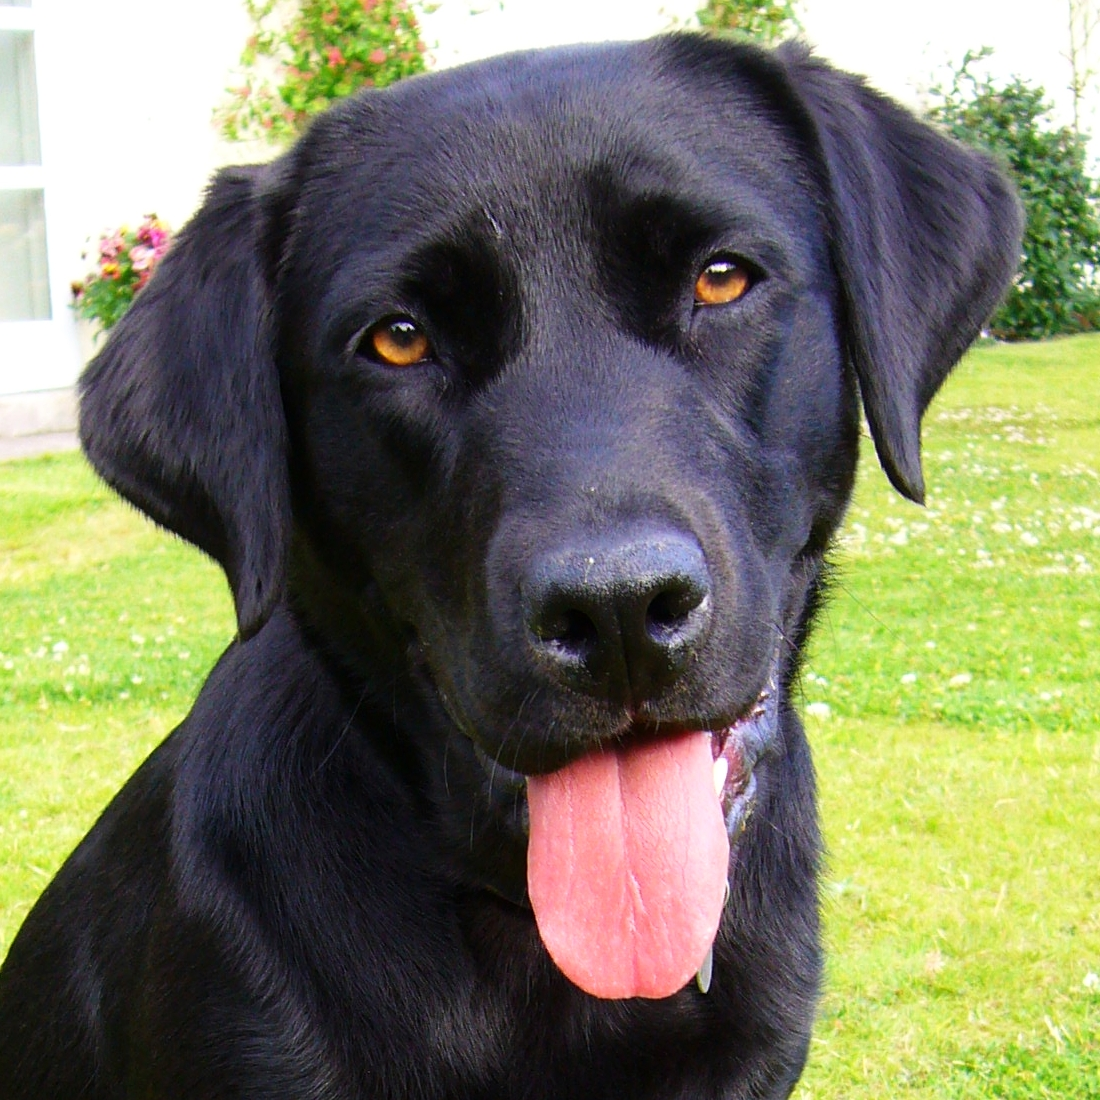 File:Black Labrador Retriever portrait.jpg - Wikipedia, the free ...